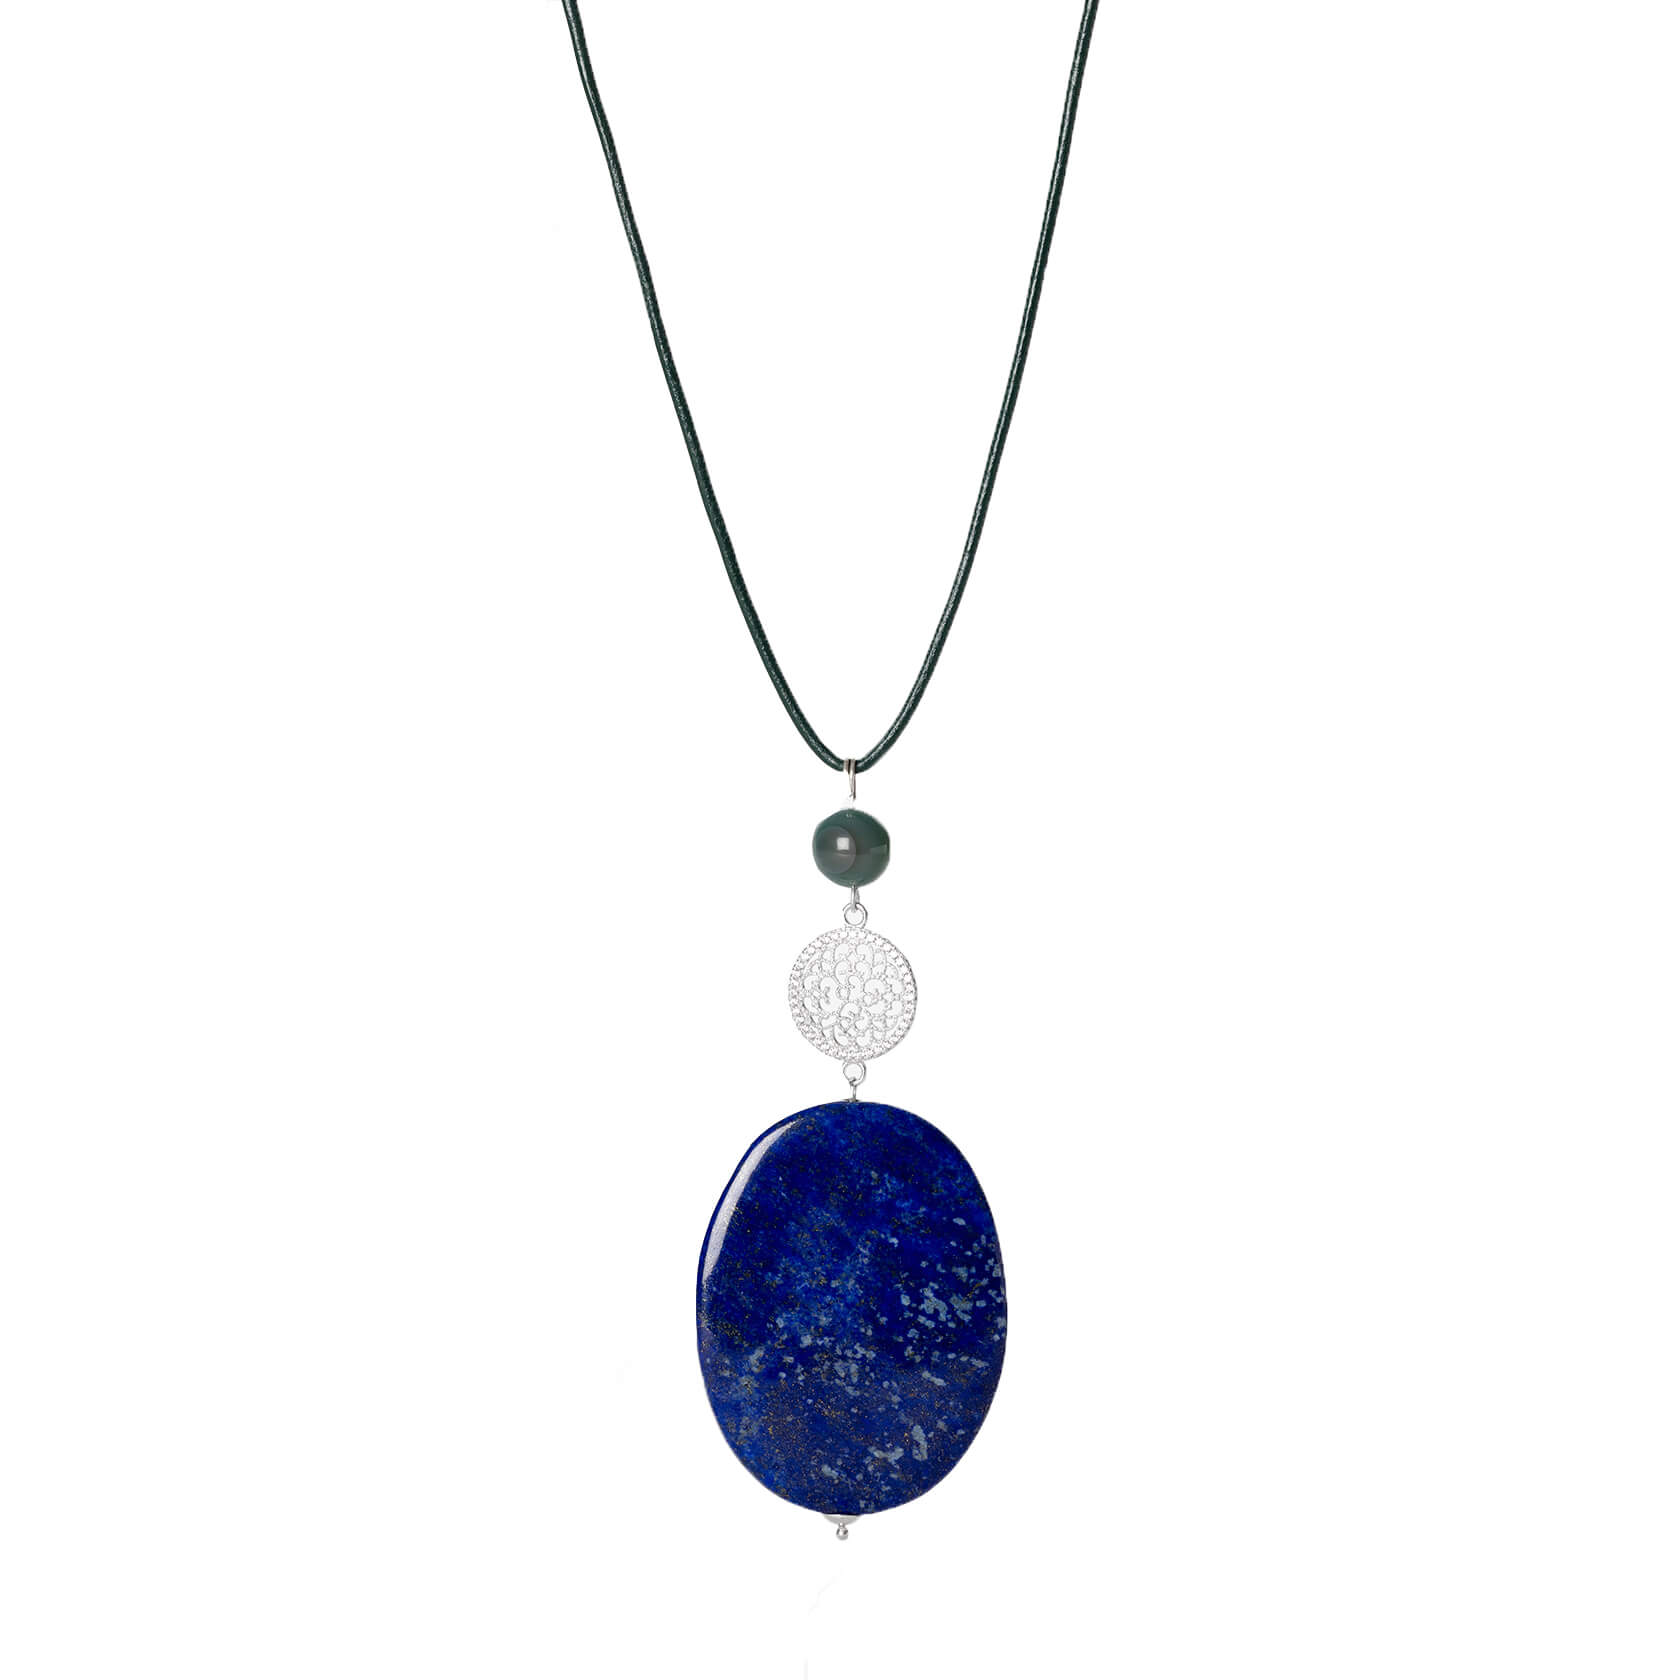 Lapis and agate pendant